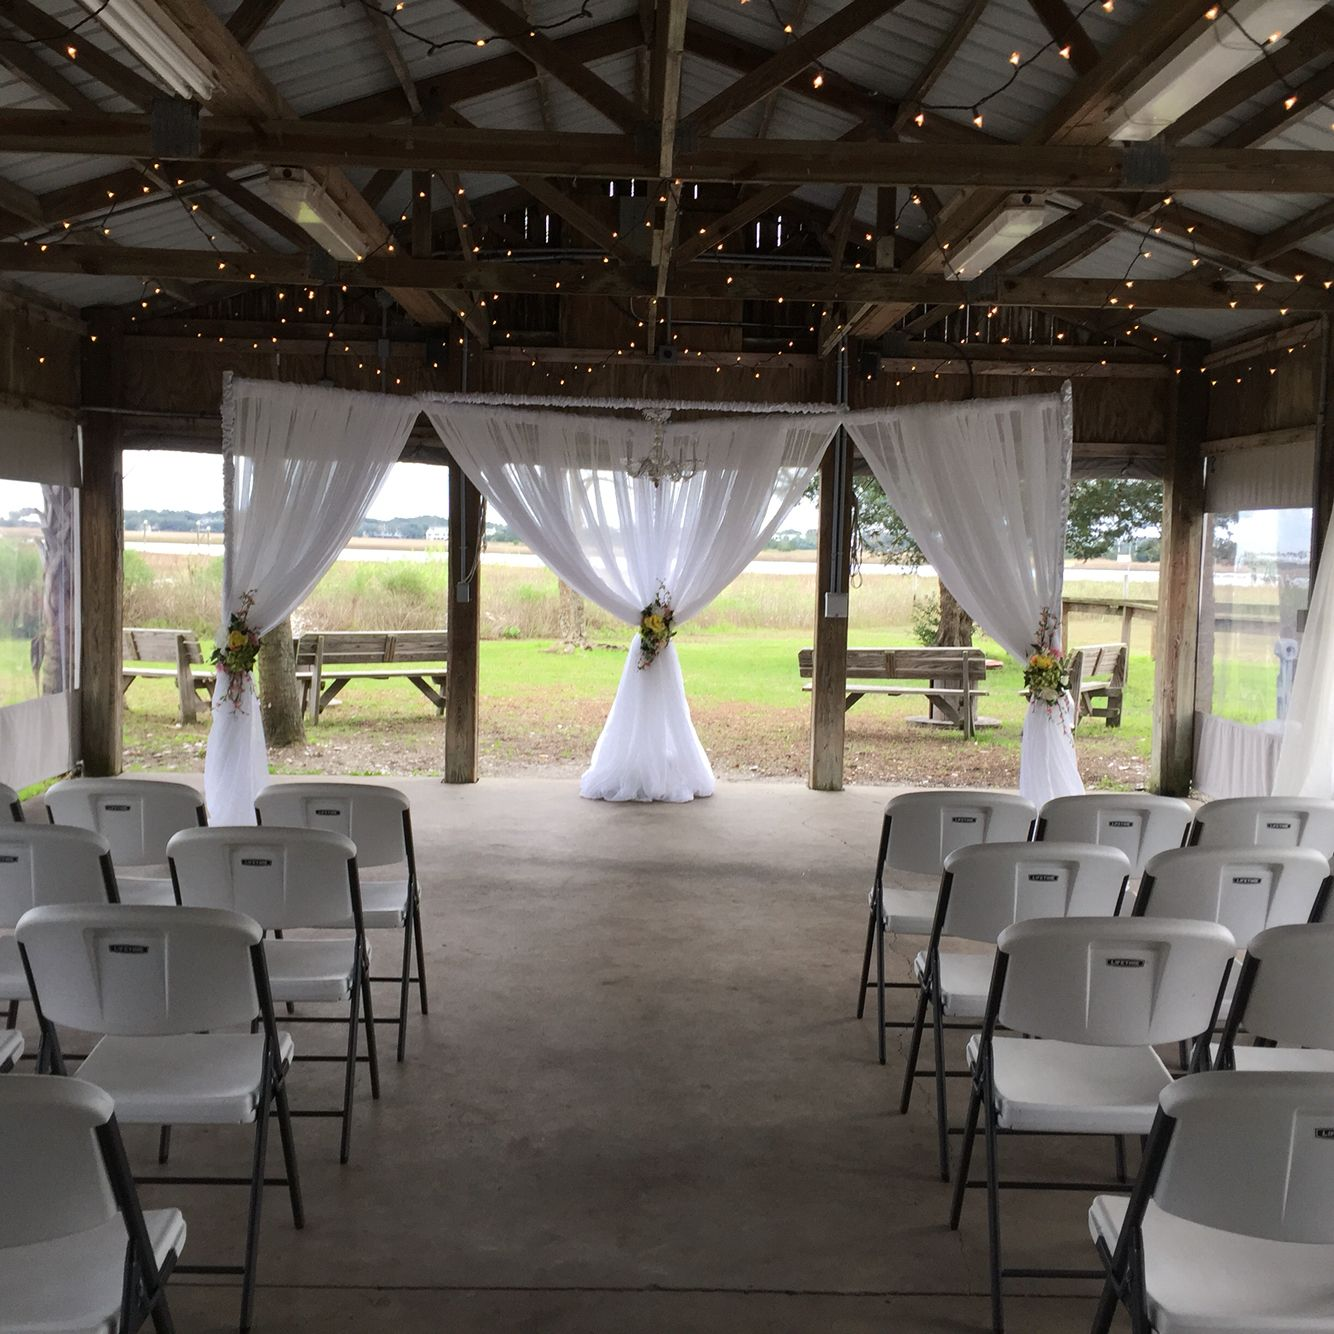 Wedding White Point Gardens Charleston Sc: Gold Bug Island Oyster Shed Set Up For Wedding. In 2019